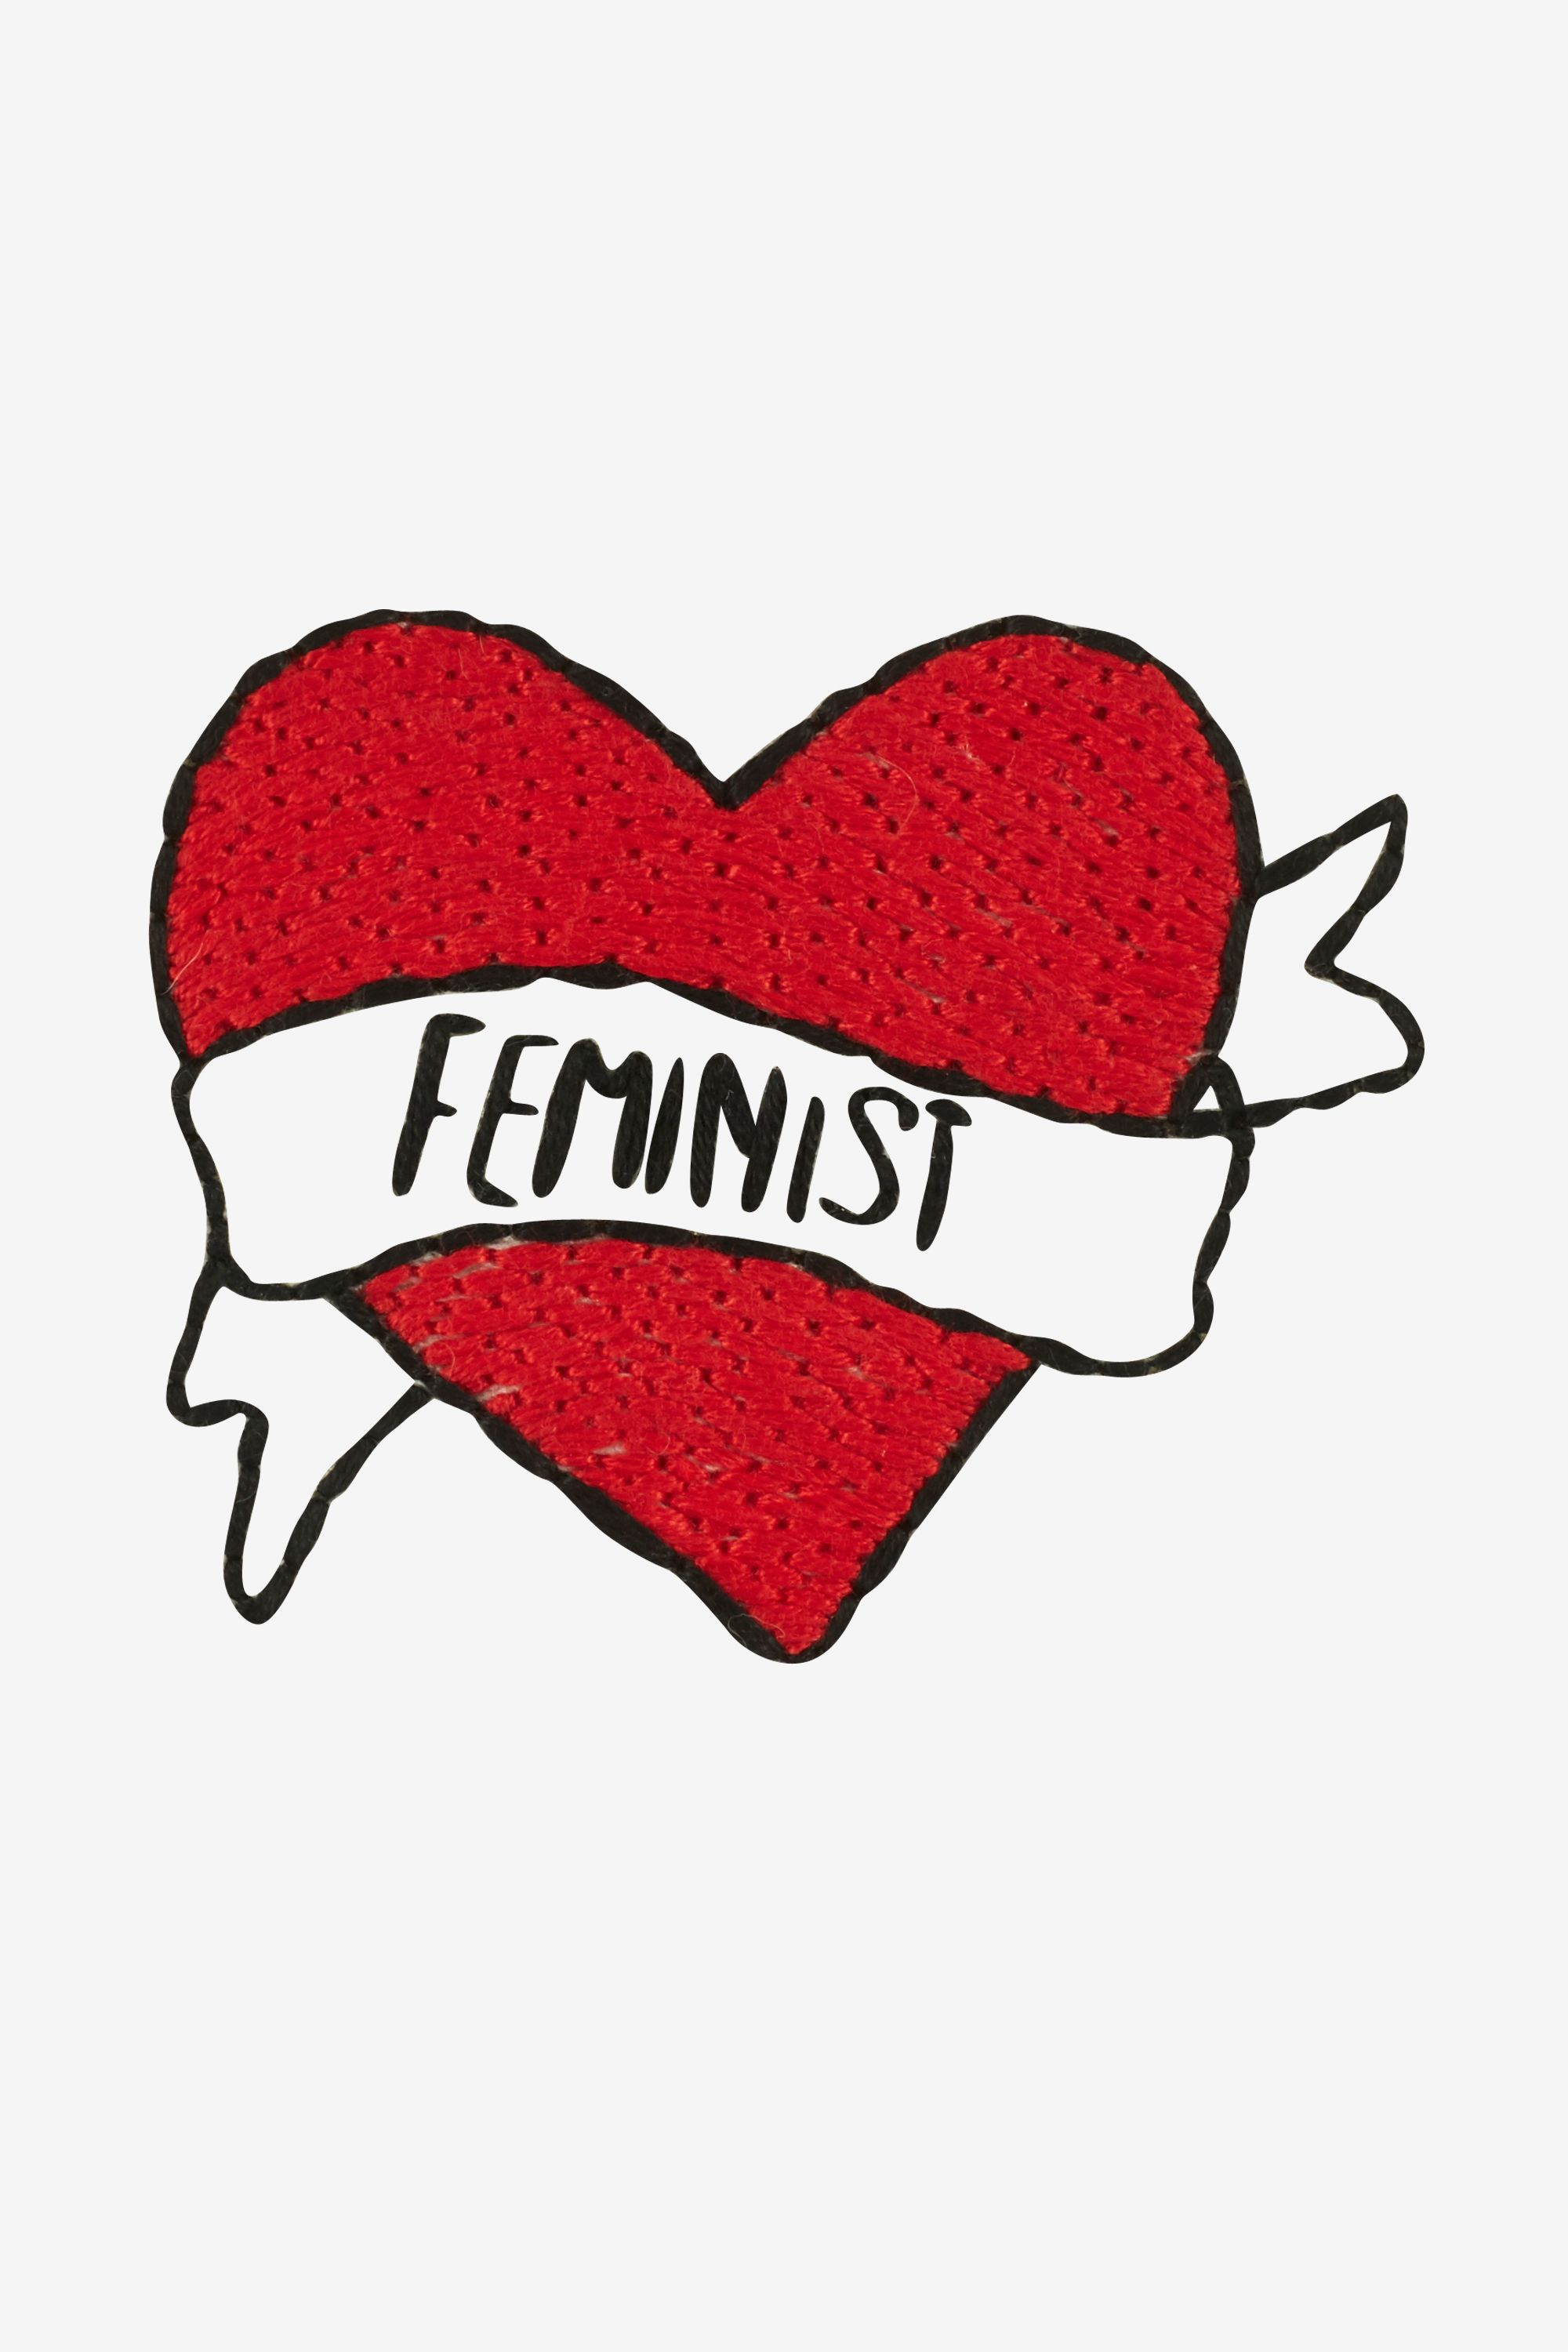 Proud Feminist pattern | FREE PATTERNS